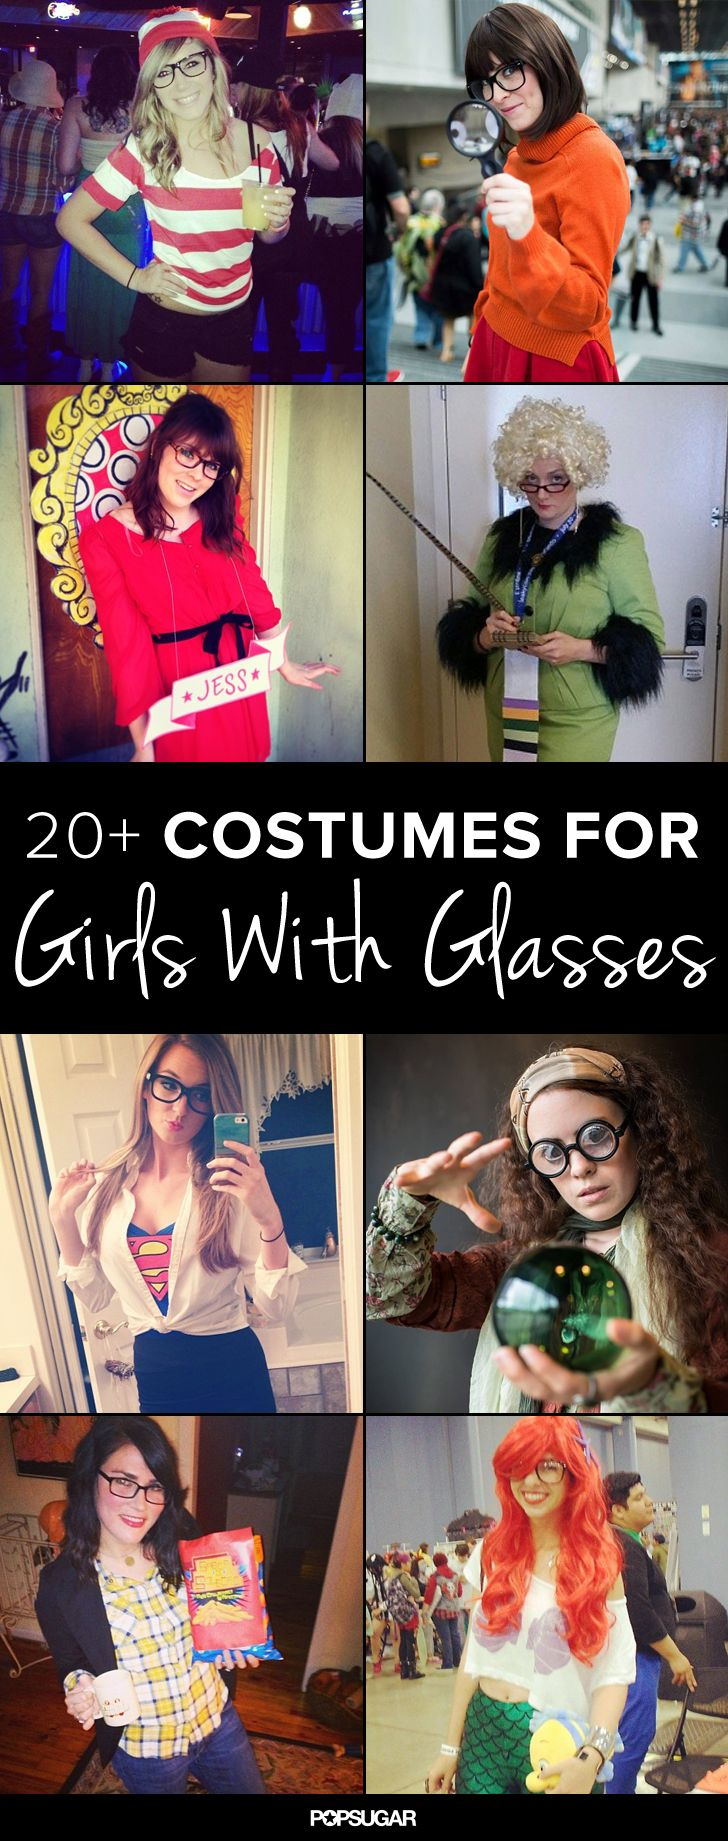 24 Costume Ideas For Girls With Glasses